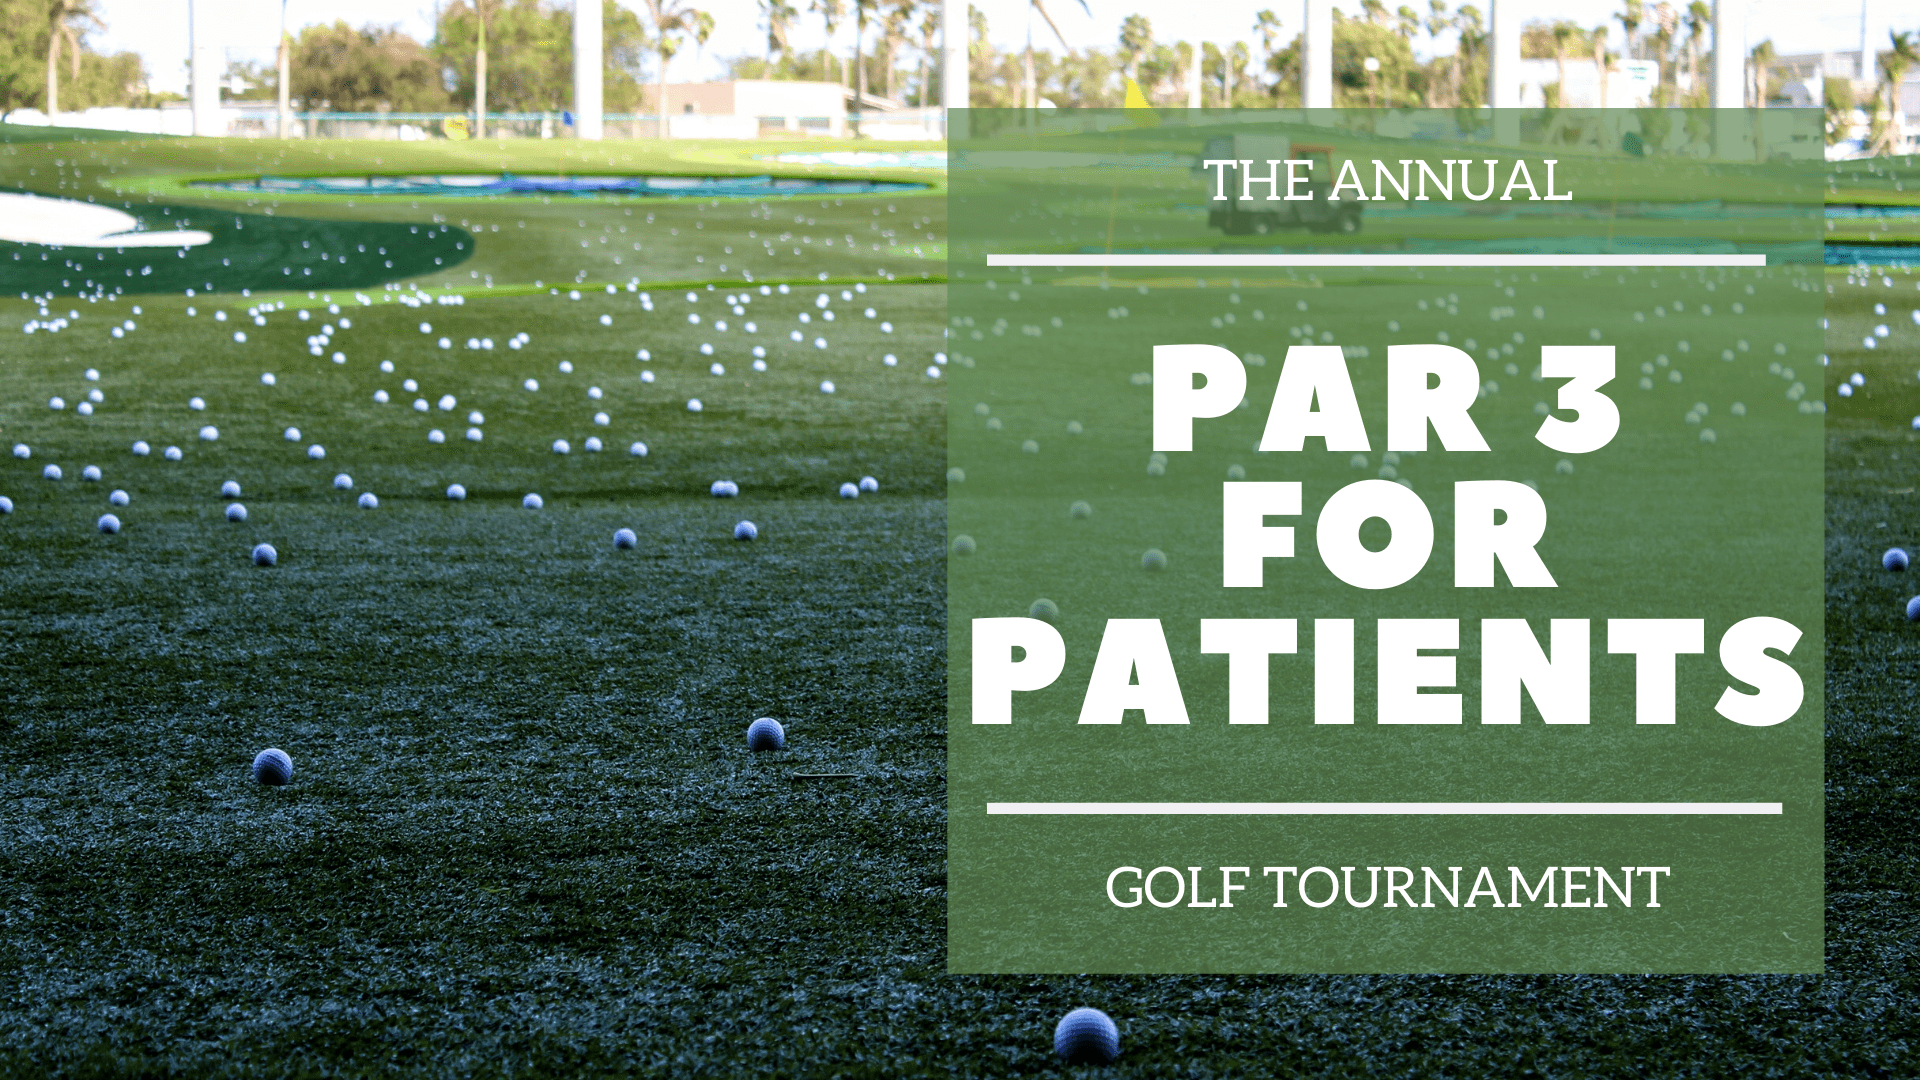 Mercy Health Center's Annual Par 3 for Patients Golf Tournament